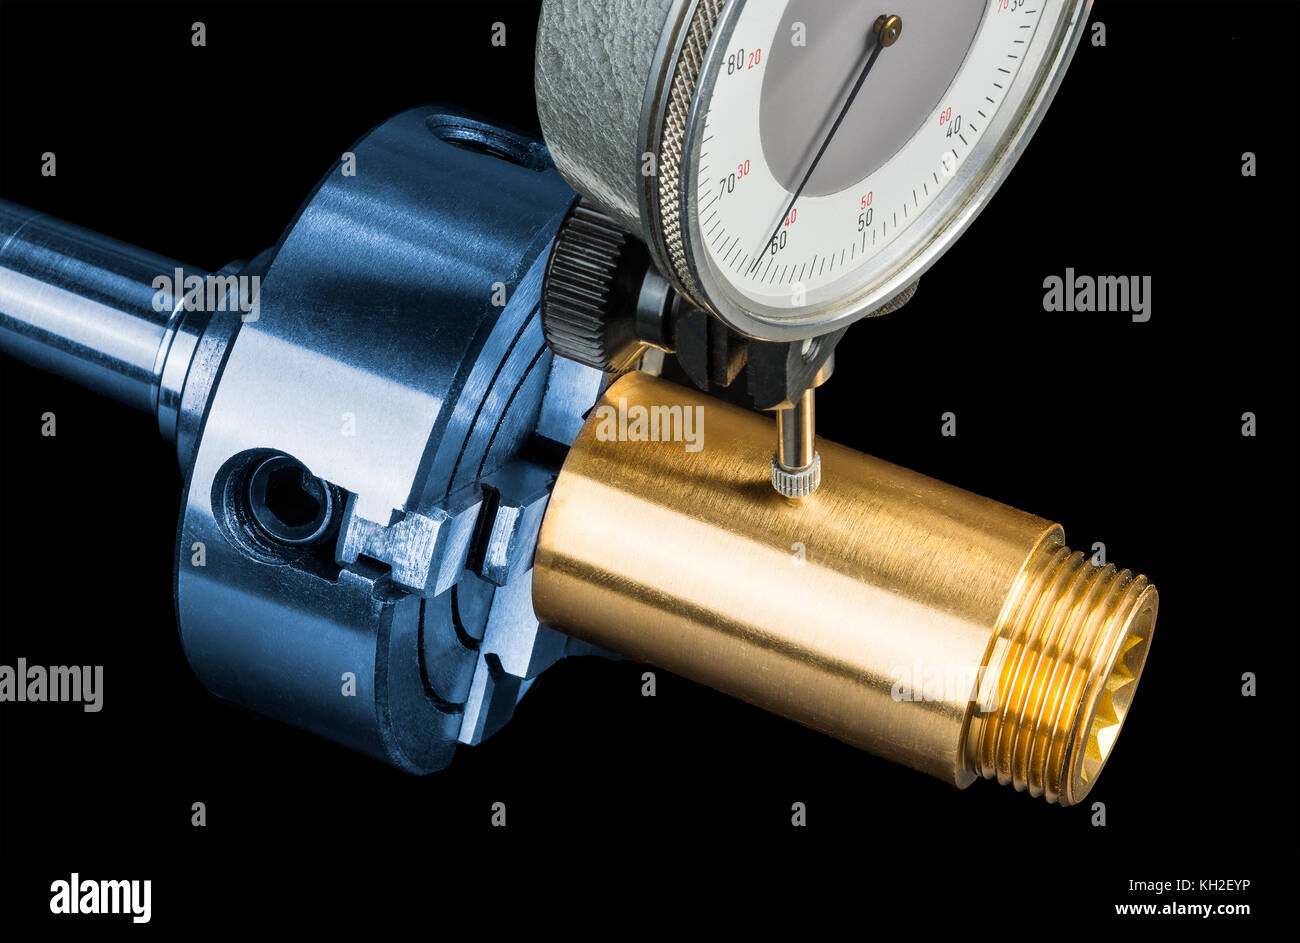 Tolerance measurement of brass workpiece in chuck. Gold fitting in clamp jaw and dial indicator on black background. - Stock Image